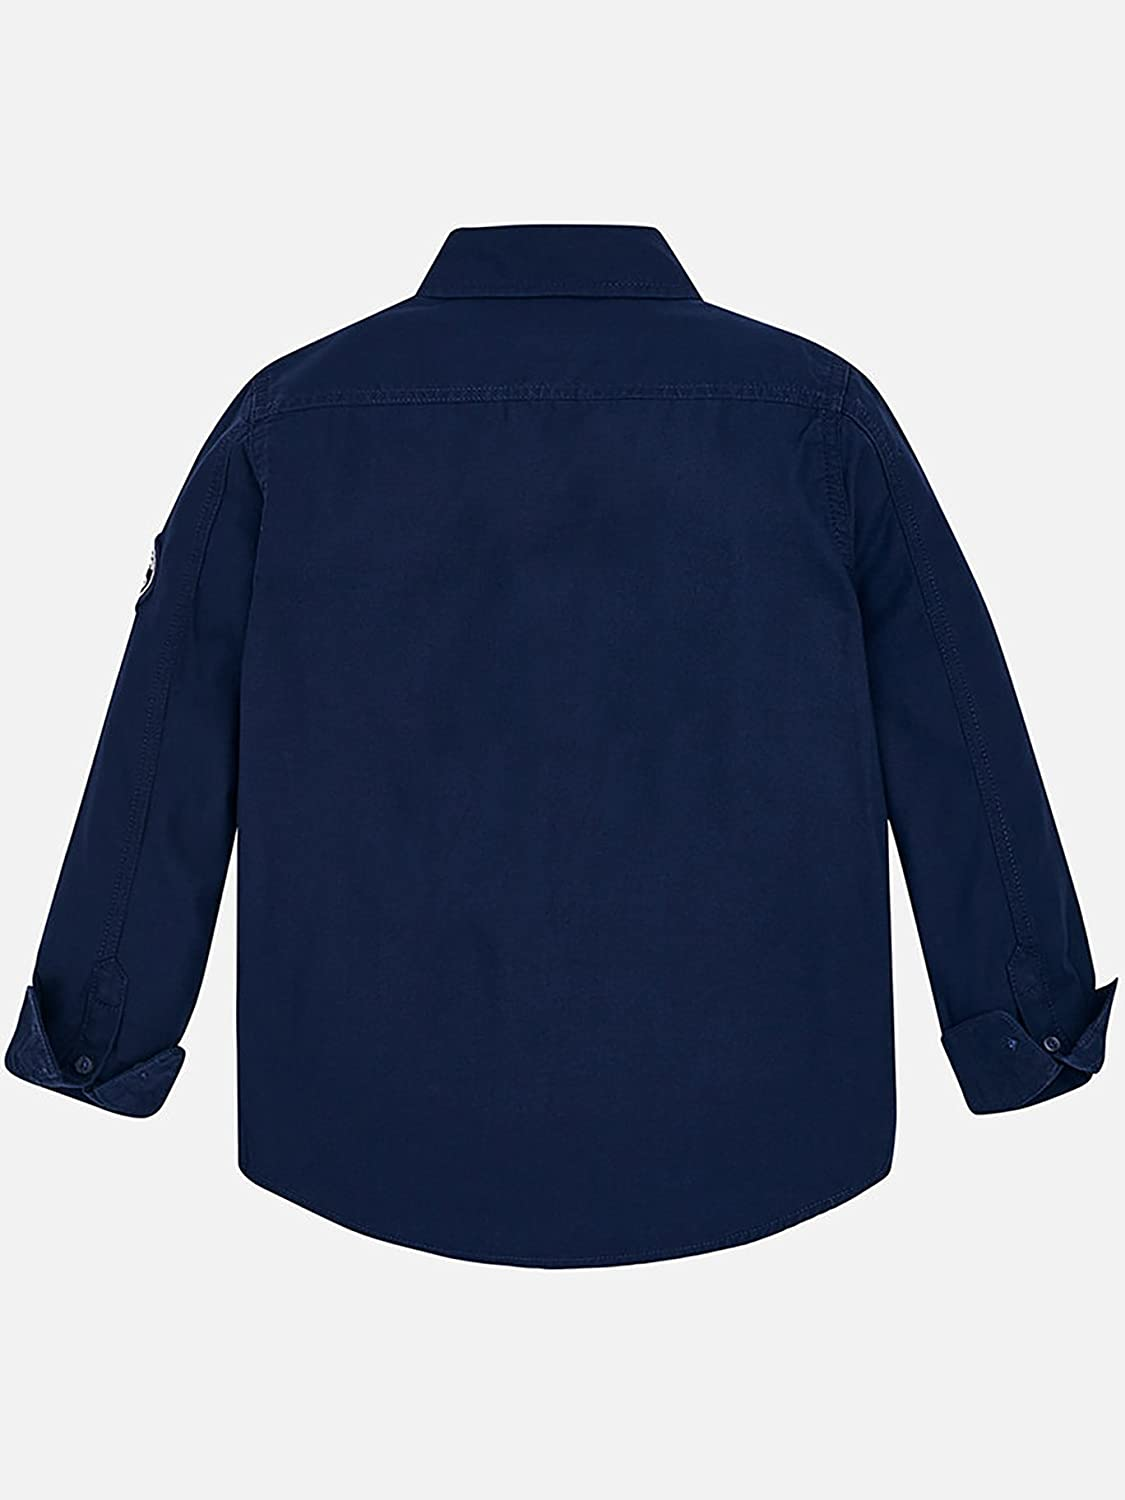 Indigo L//s Patched Shirt for Boys 7148 Mayoral